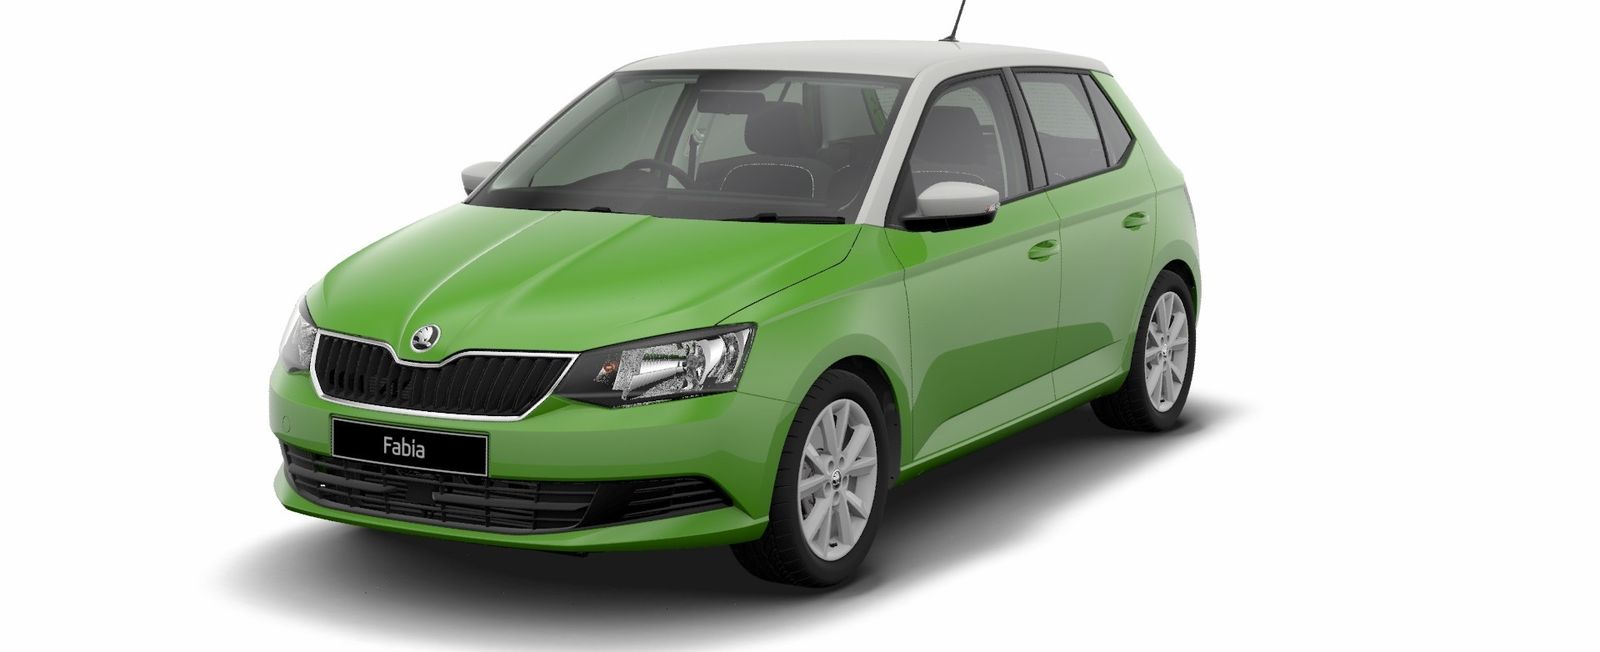 2015 Skoda Fabia Uk Colour Guide And Prices Carwow